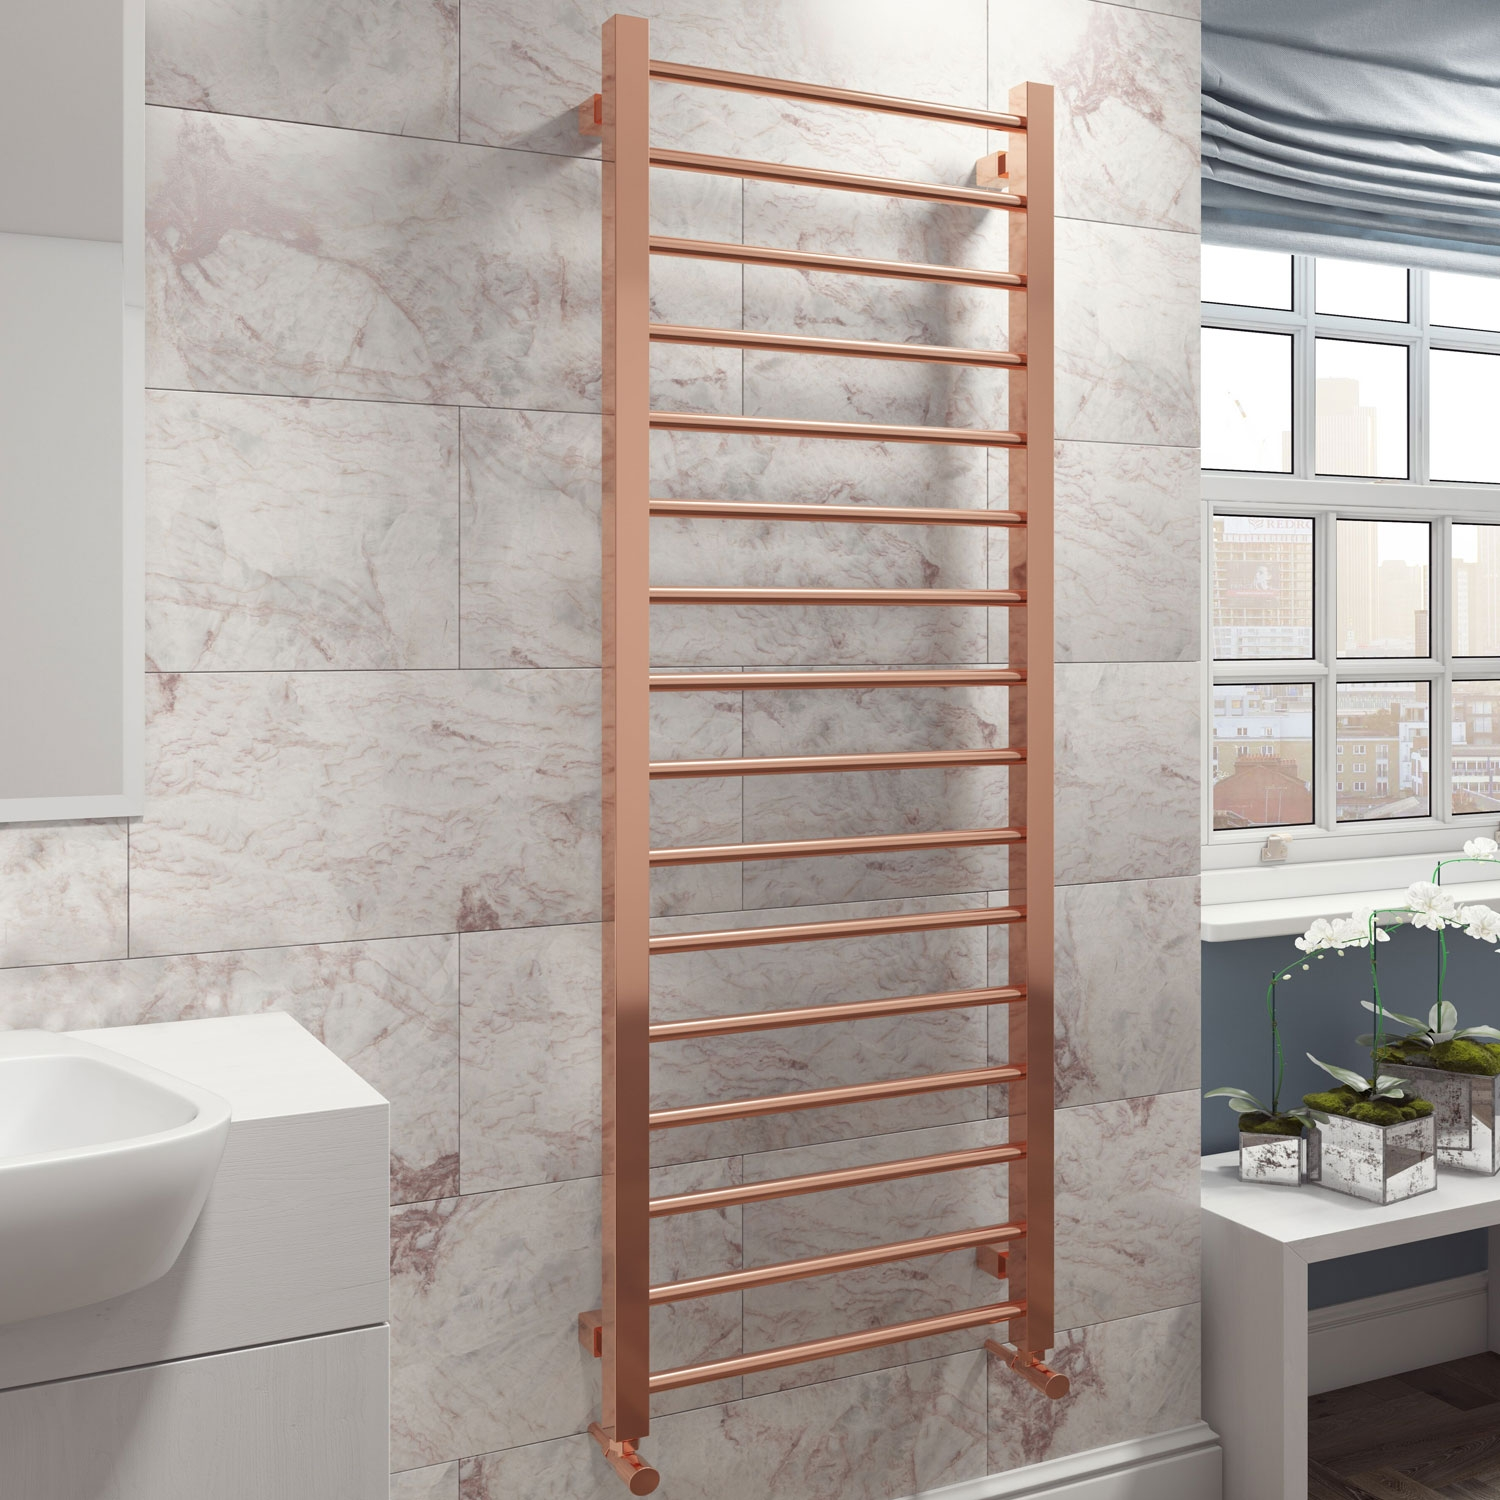 Cali Straight Heated Towel Rail 1600mm H x 500mm W - Rose Gold